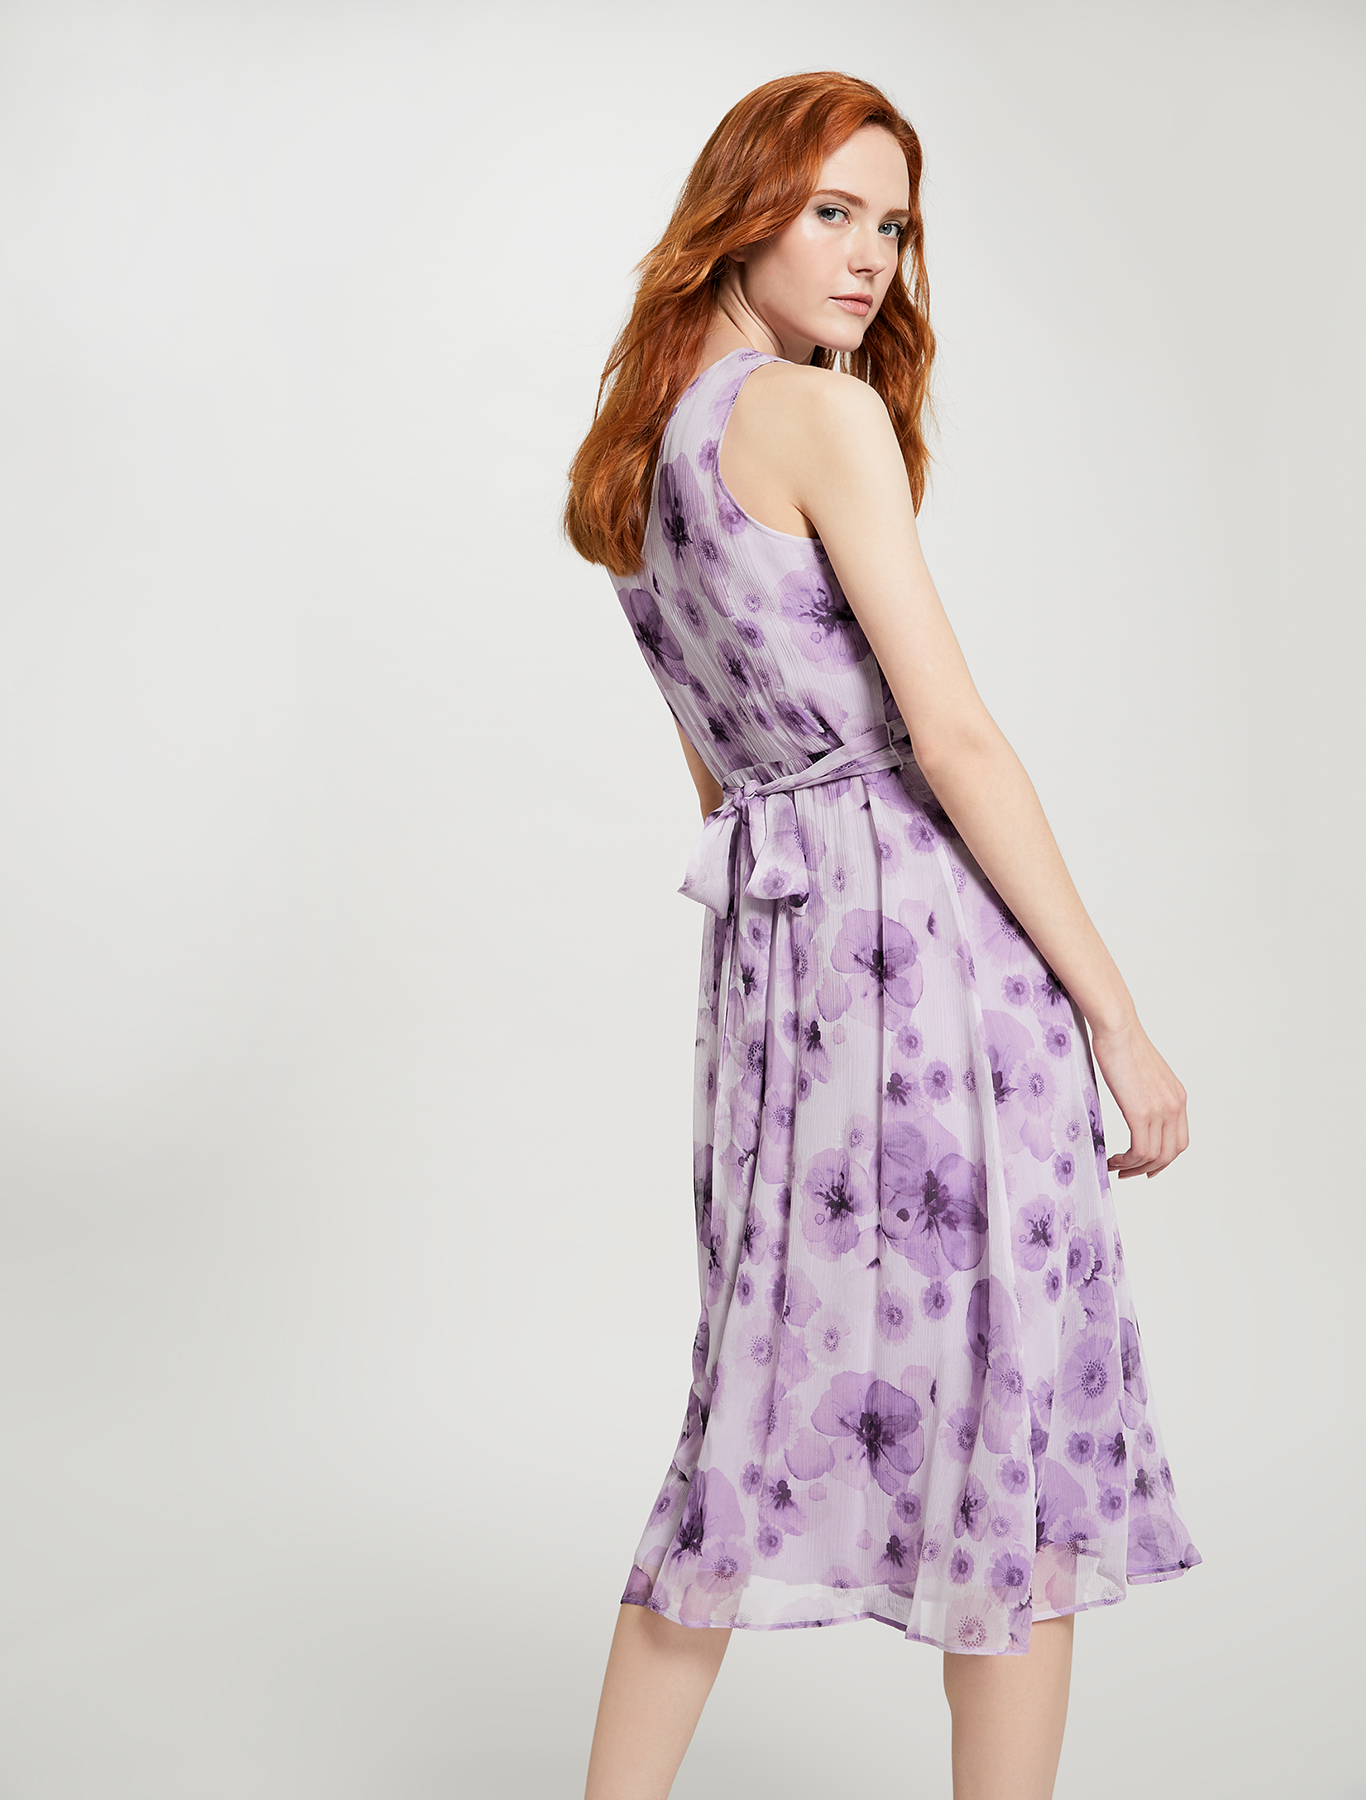 Floral dress with tie belt - lilac pattern - pennyblack